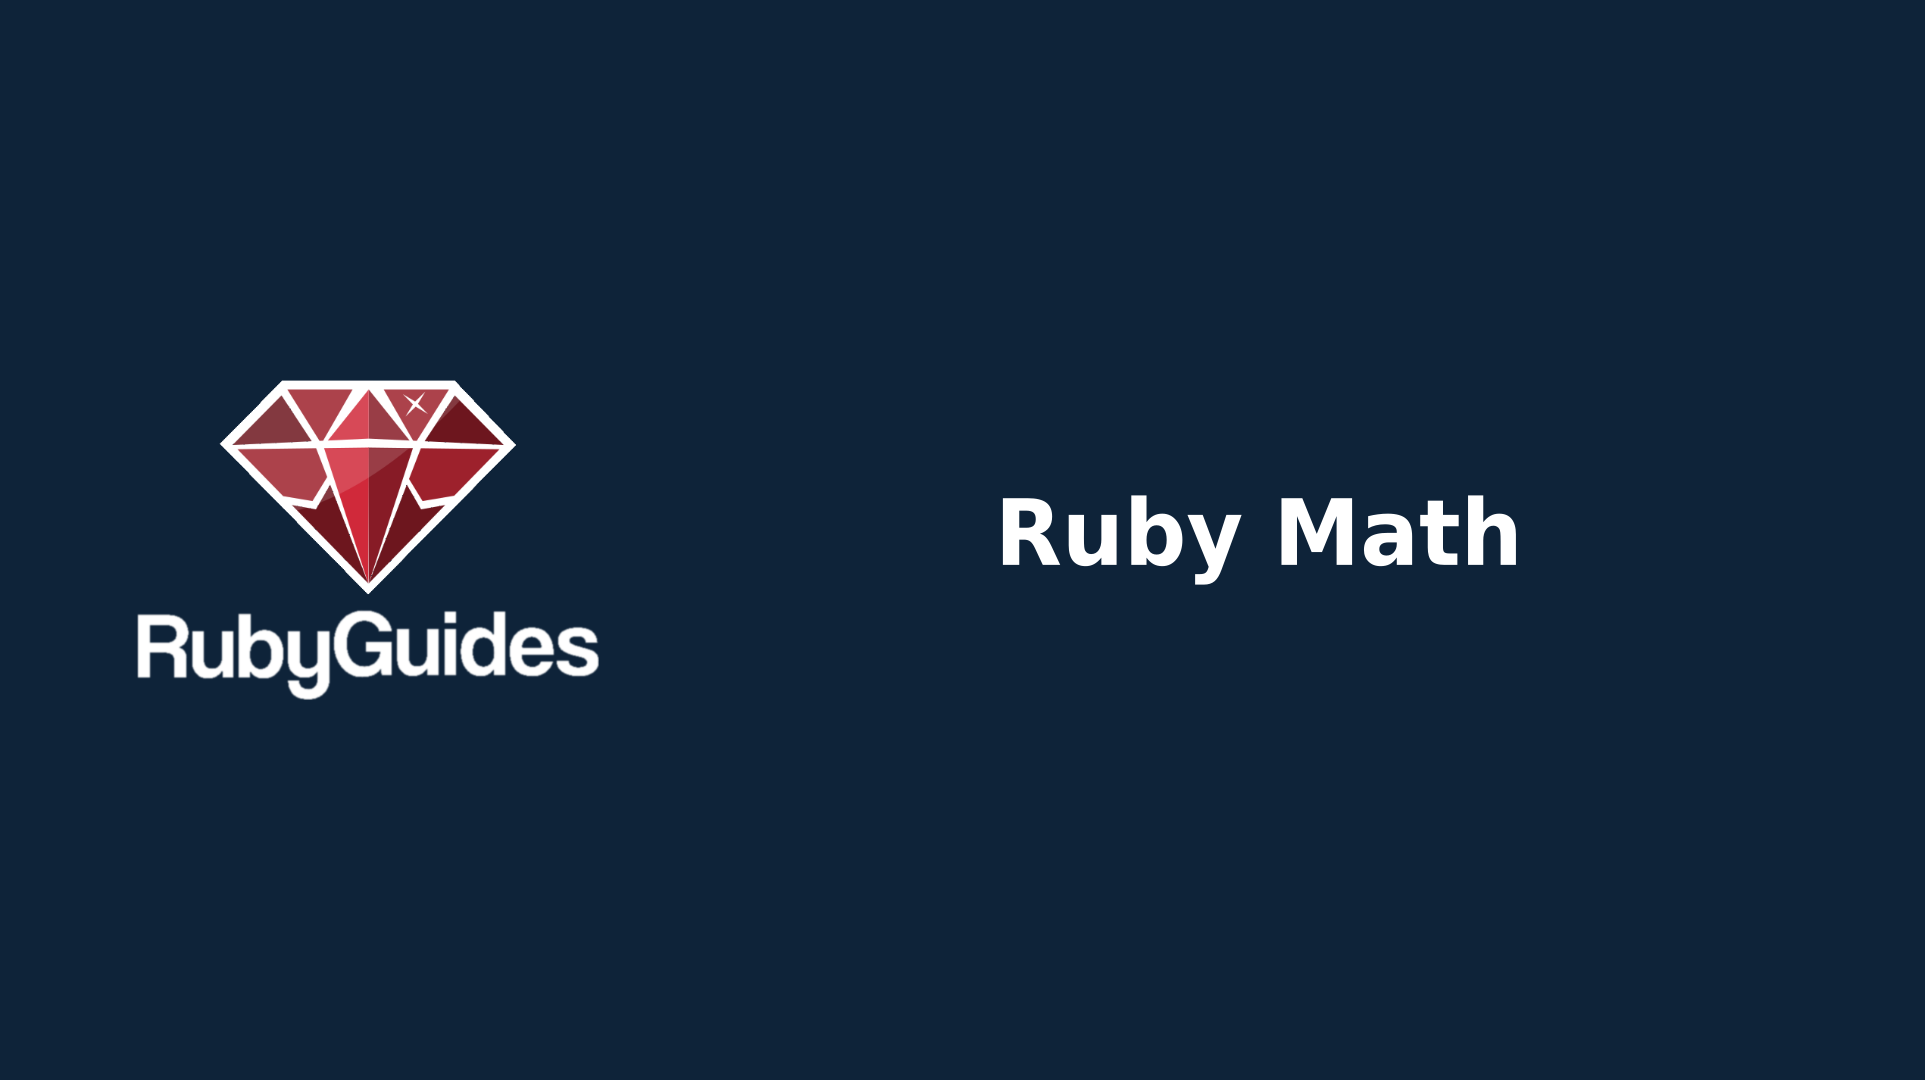 Helpful Math Concepts For Ruby Developers (Modulo, Binary, Methods)